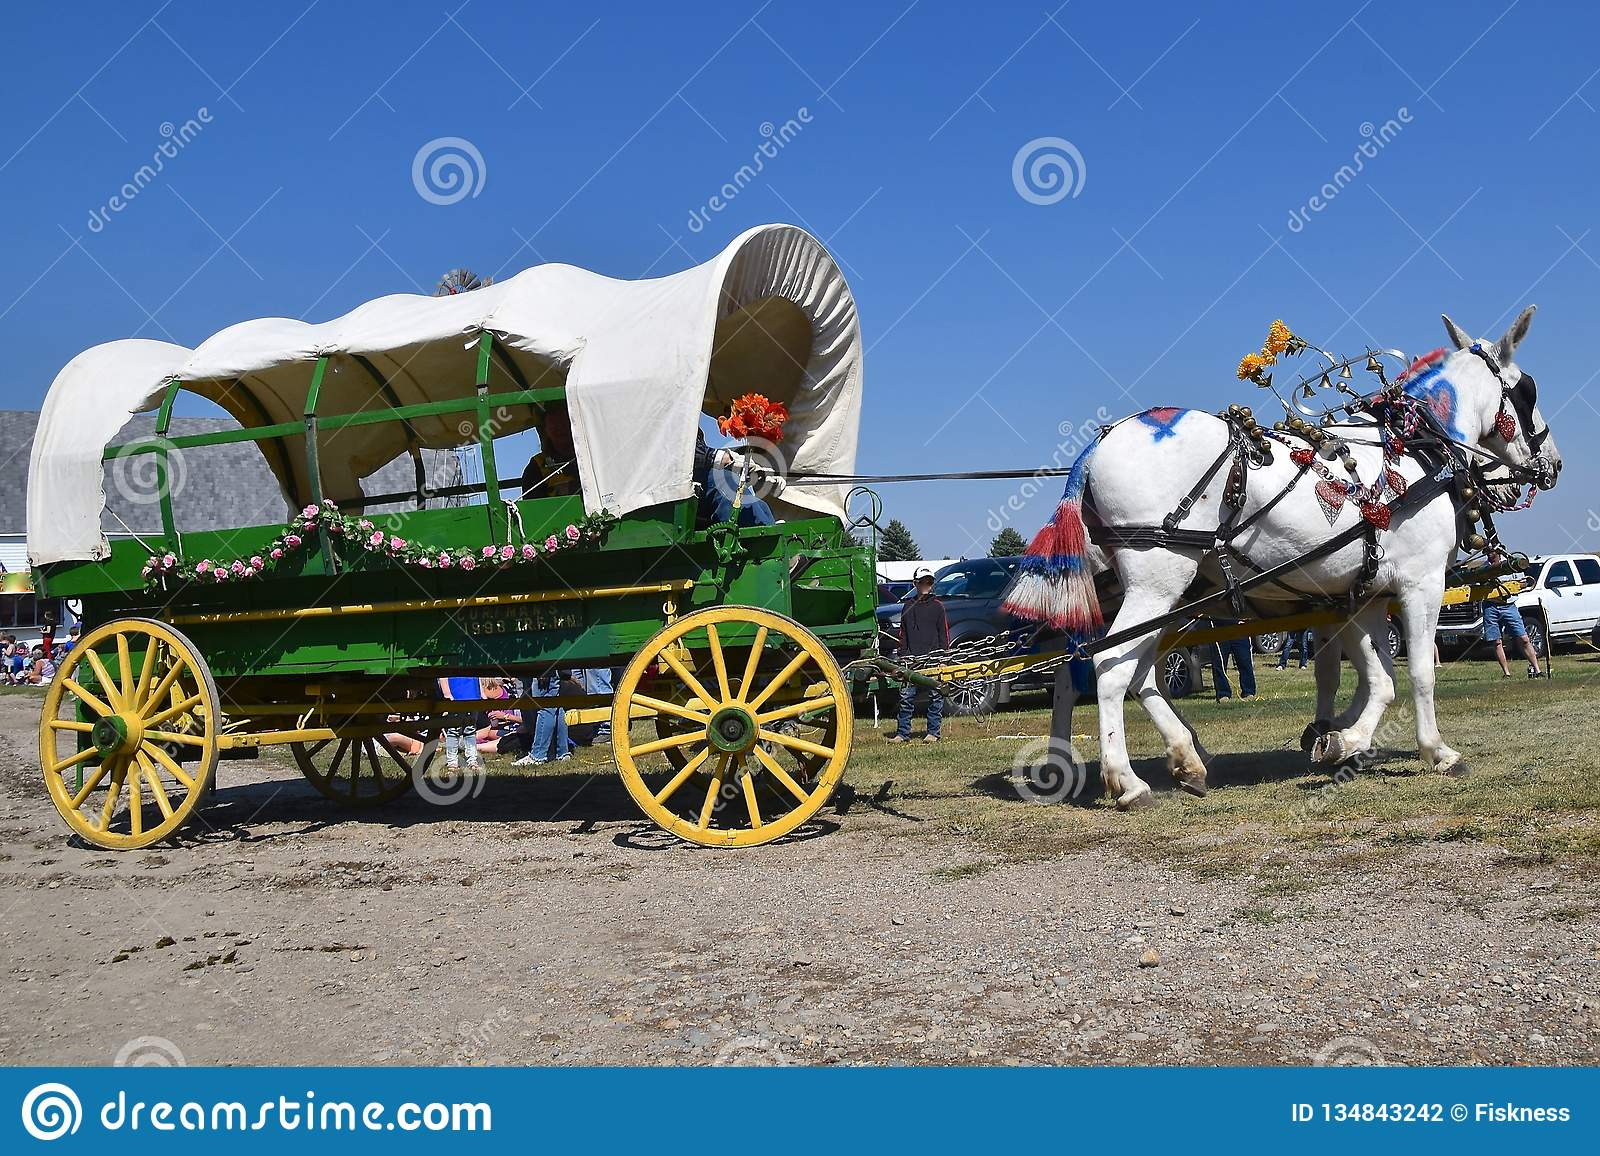 621 Decorated Wagon Photos Free Royalty Free Stock Photos From Dreamstime